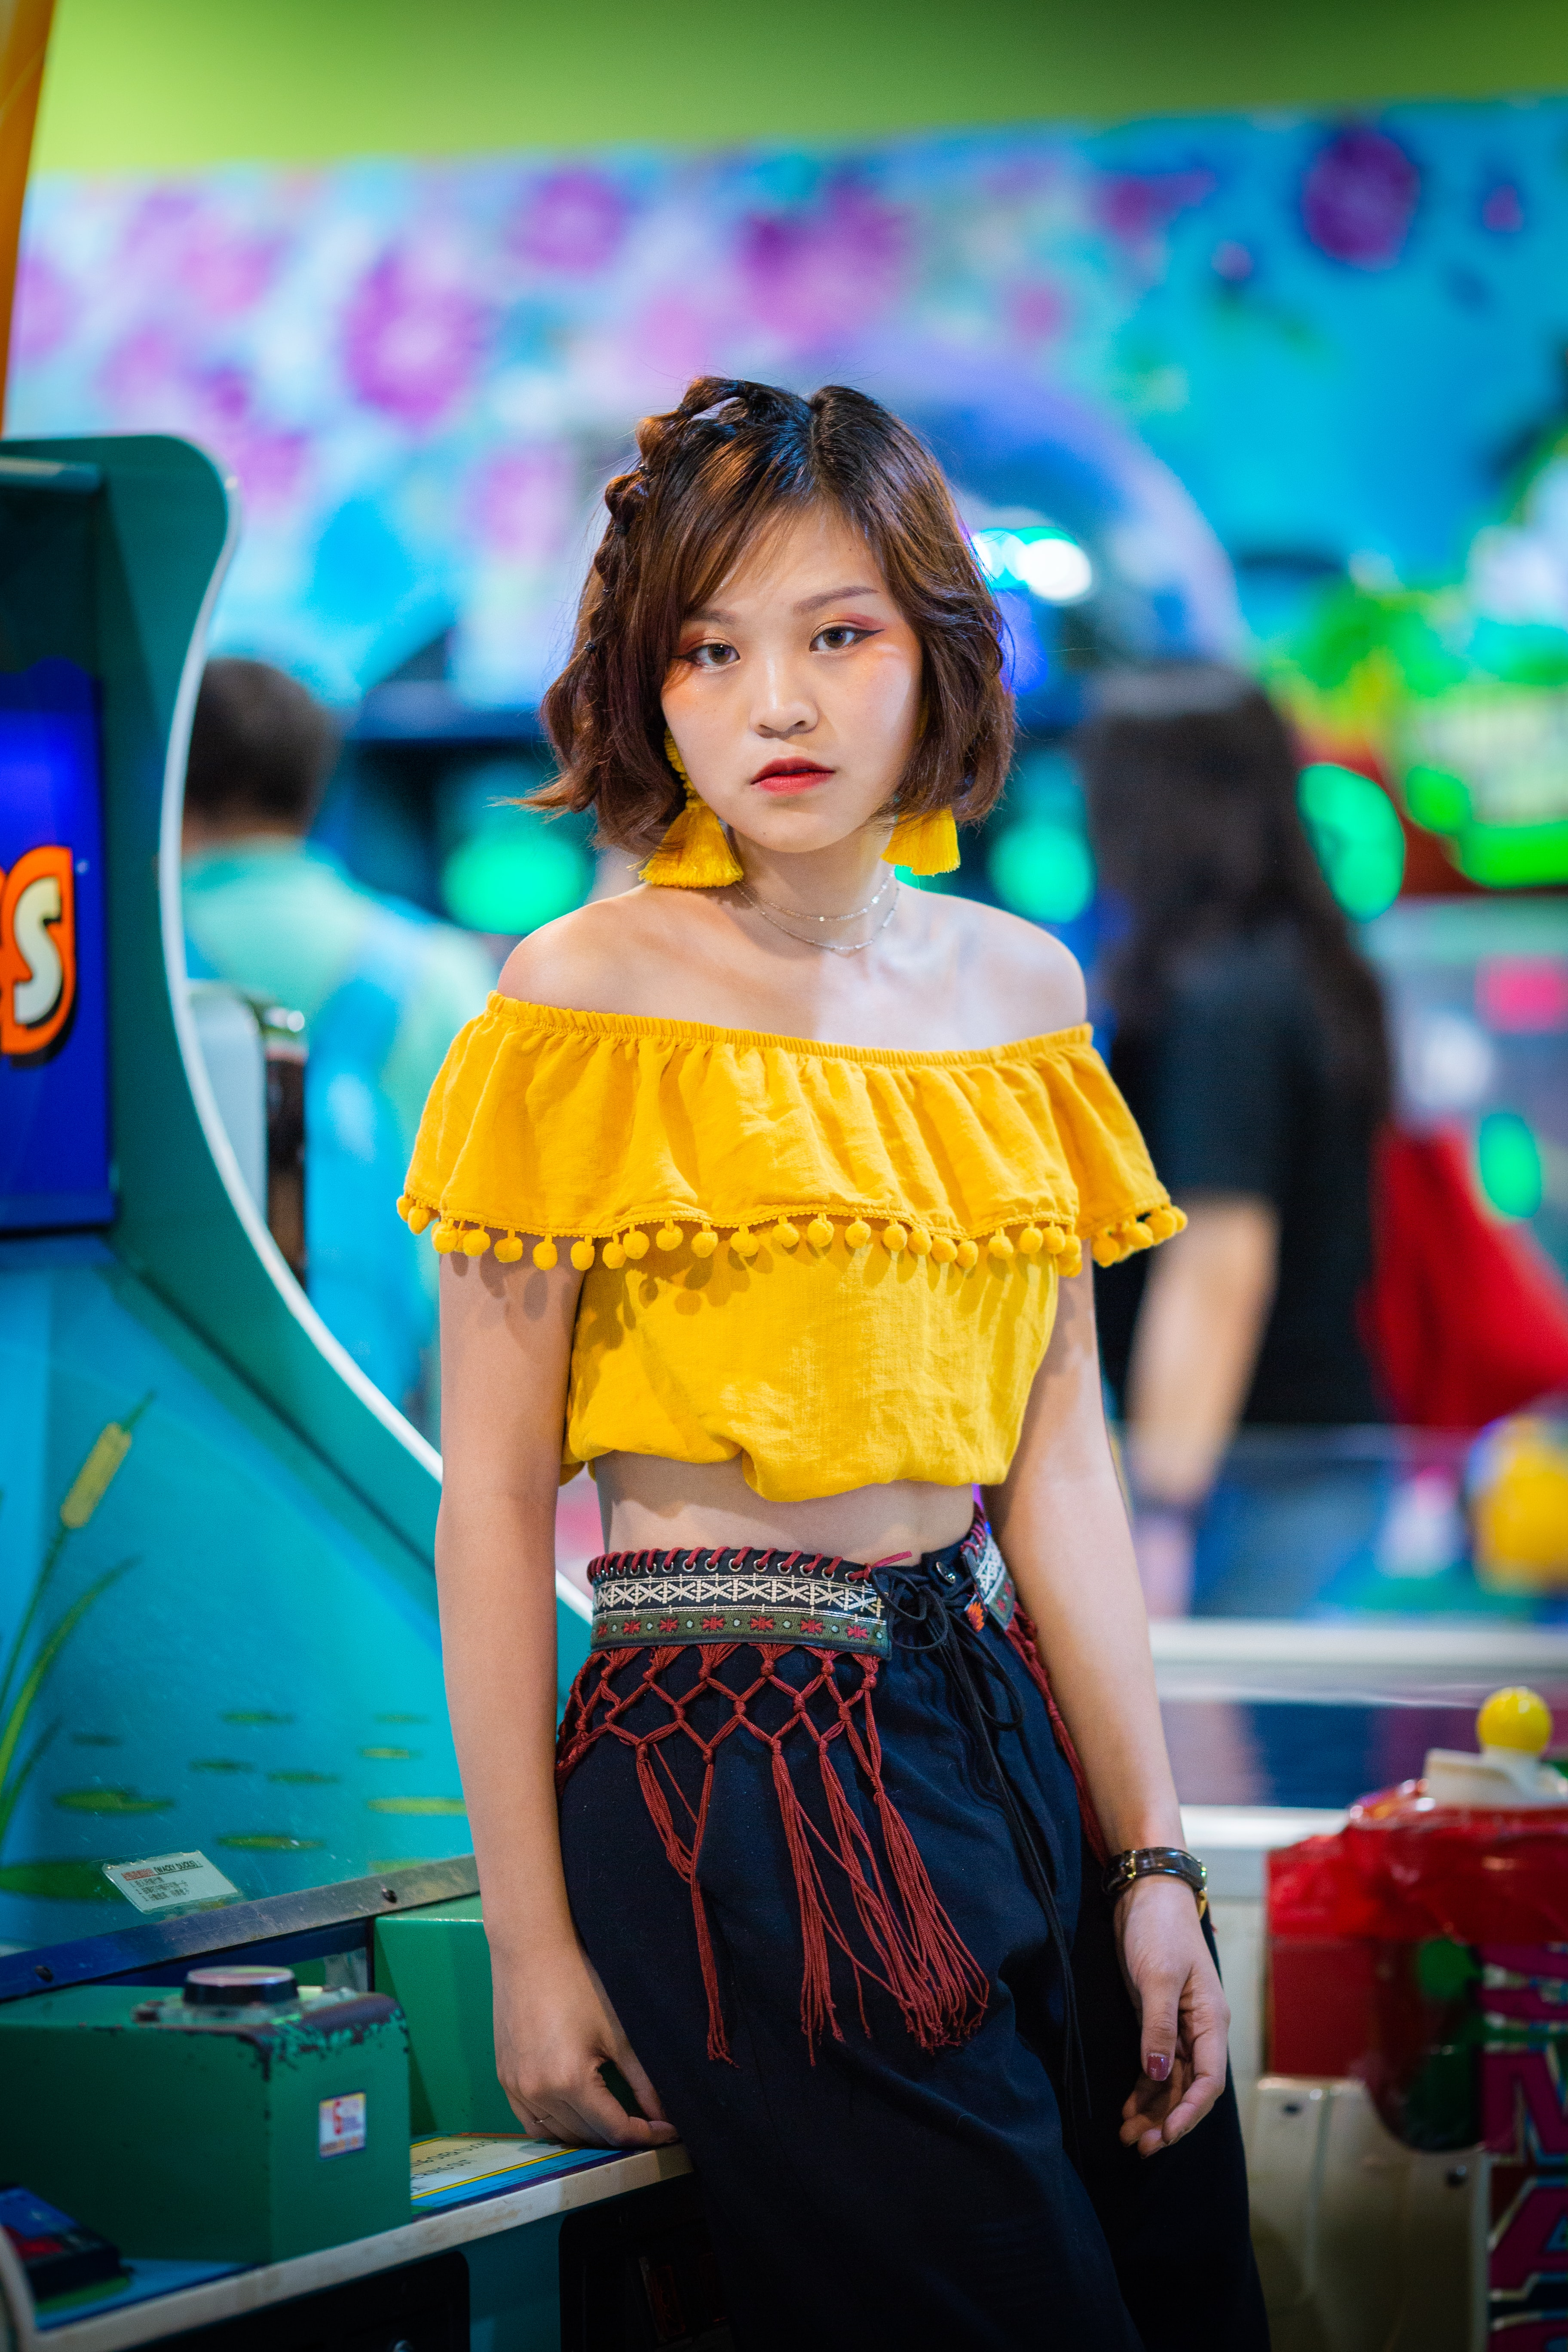 woman in yellow off-shoulder crop top sitting on green and blue arcade machine